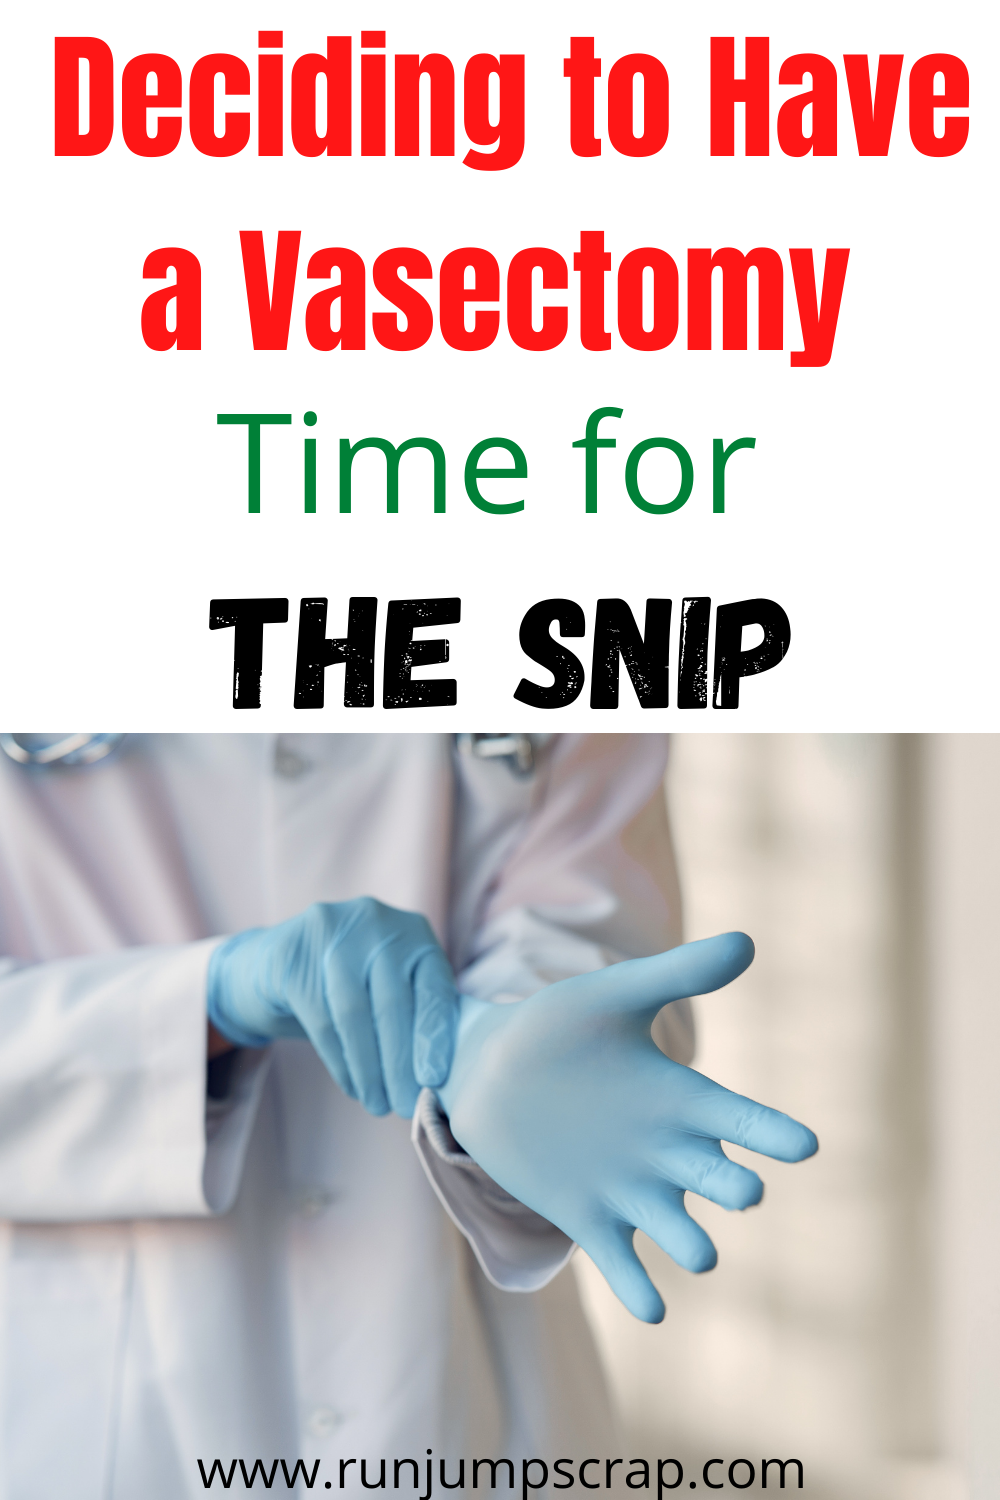 deciding to have a vasectomy